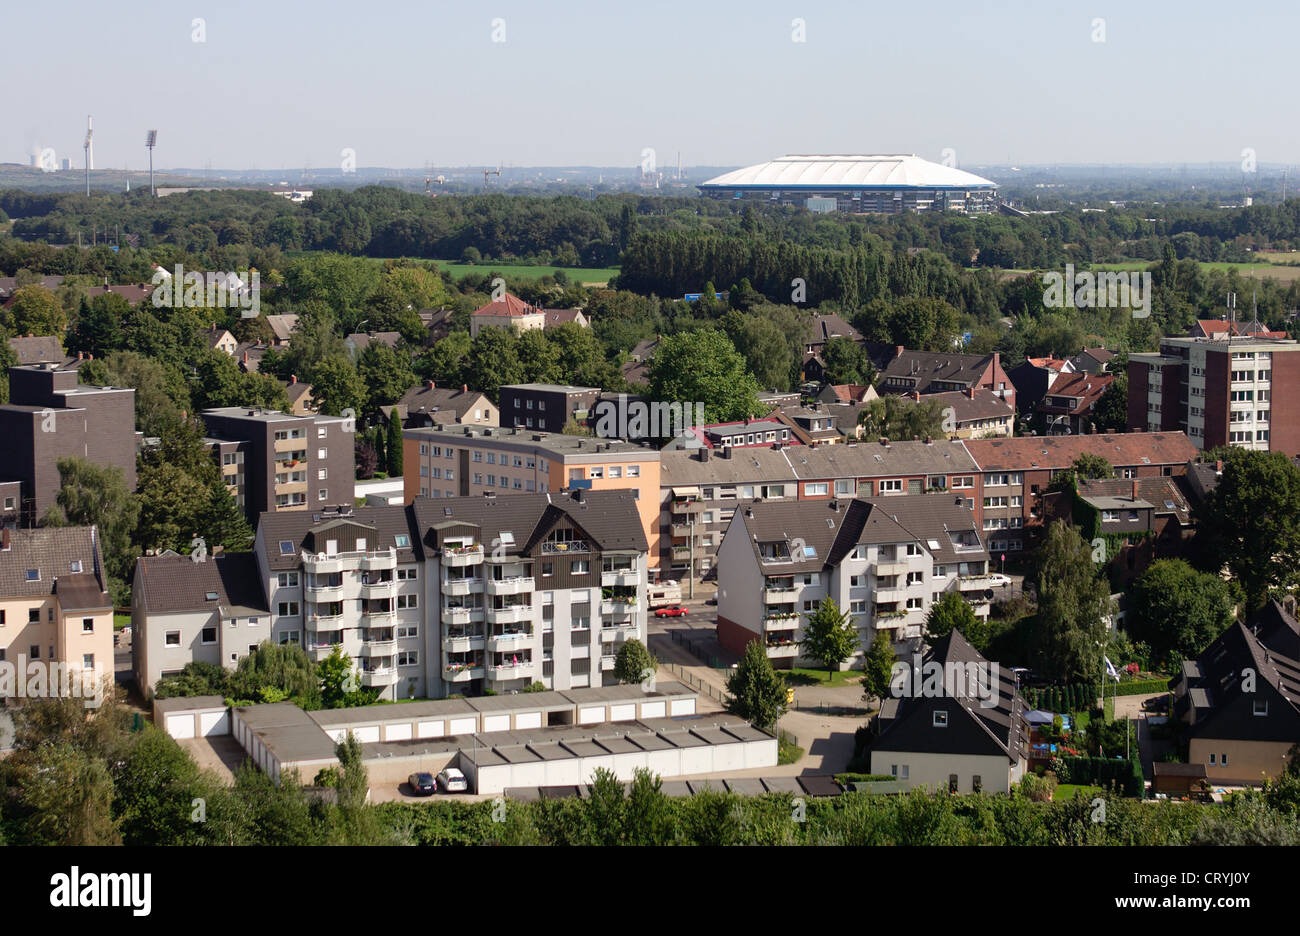 gelsenkirchen with schalke arena city facts stock photo 49164667 alamy. Black Bedroom Furniture Sets. Home Design Ideas